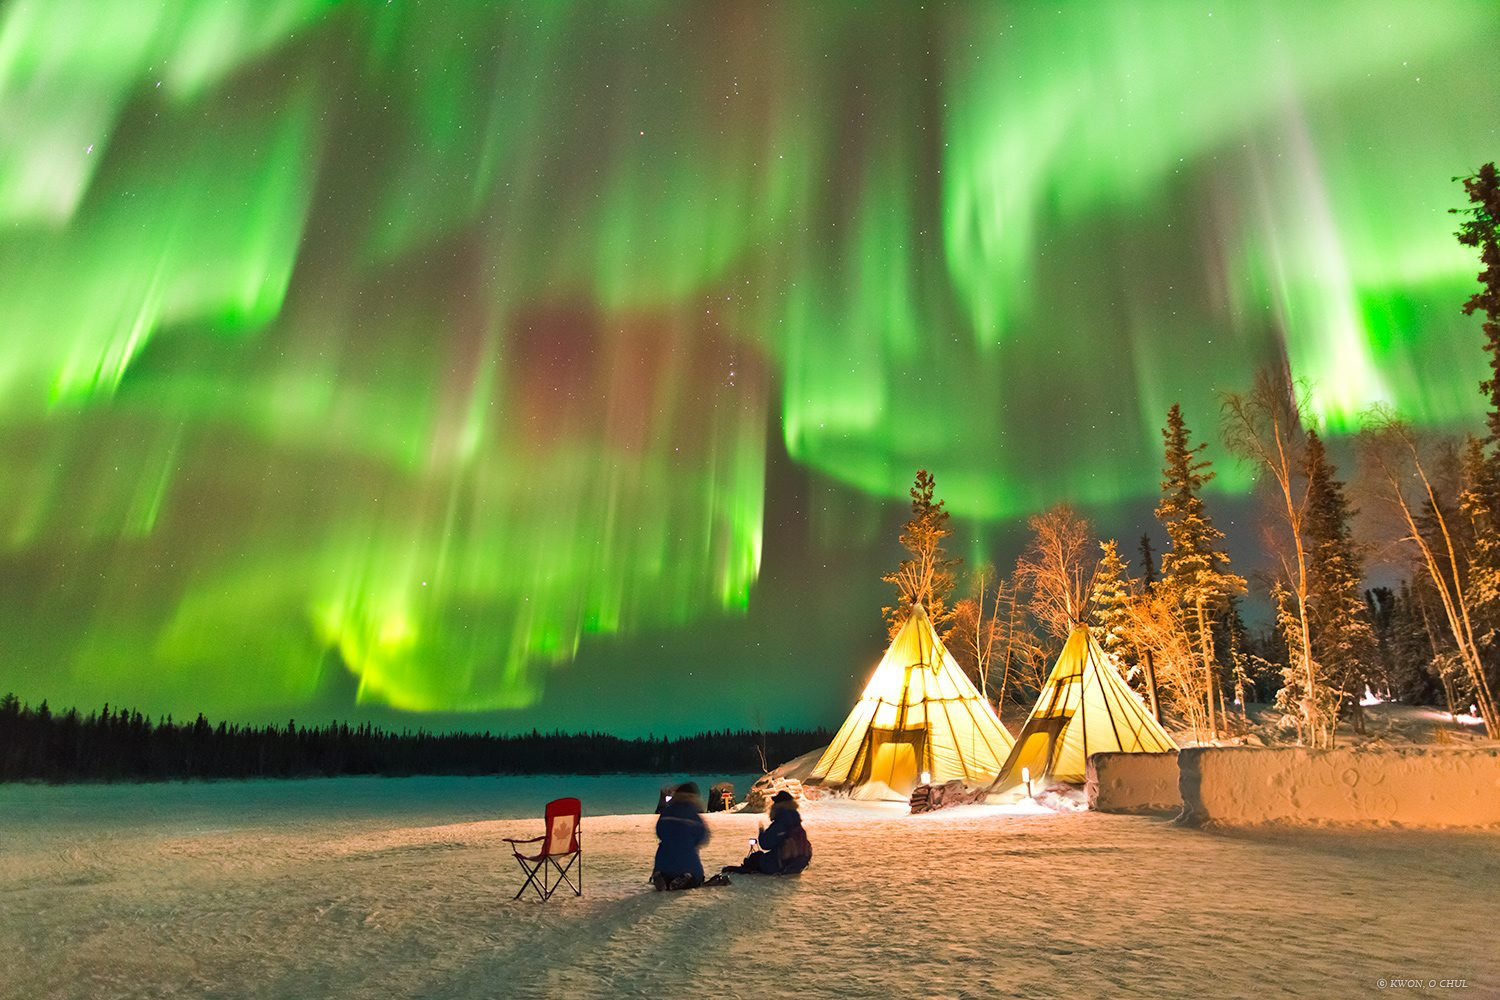 The Aurora Borealis lights seen rippling across the sky, in Northern Canada on August 14, 2014.